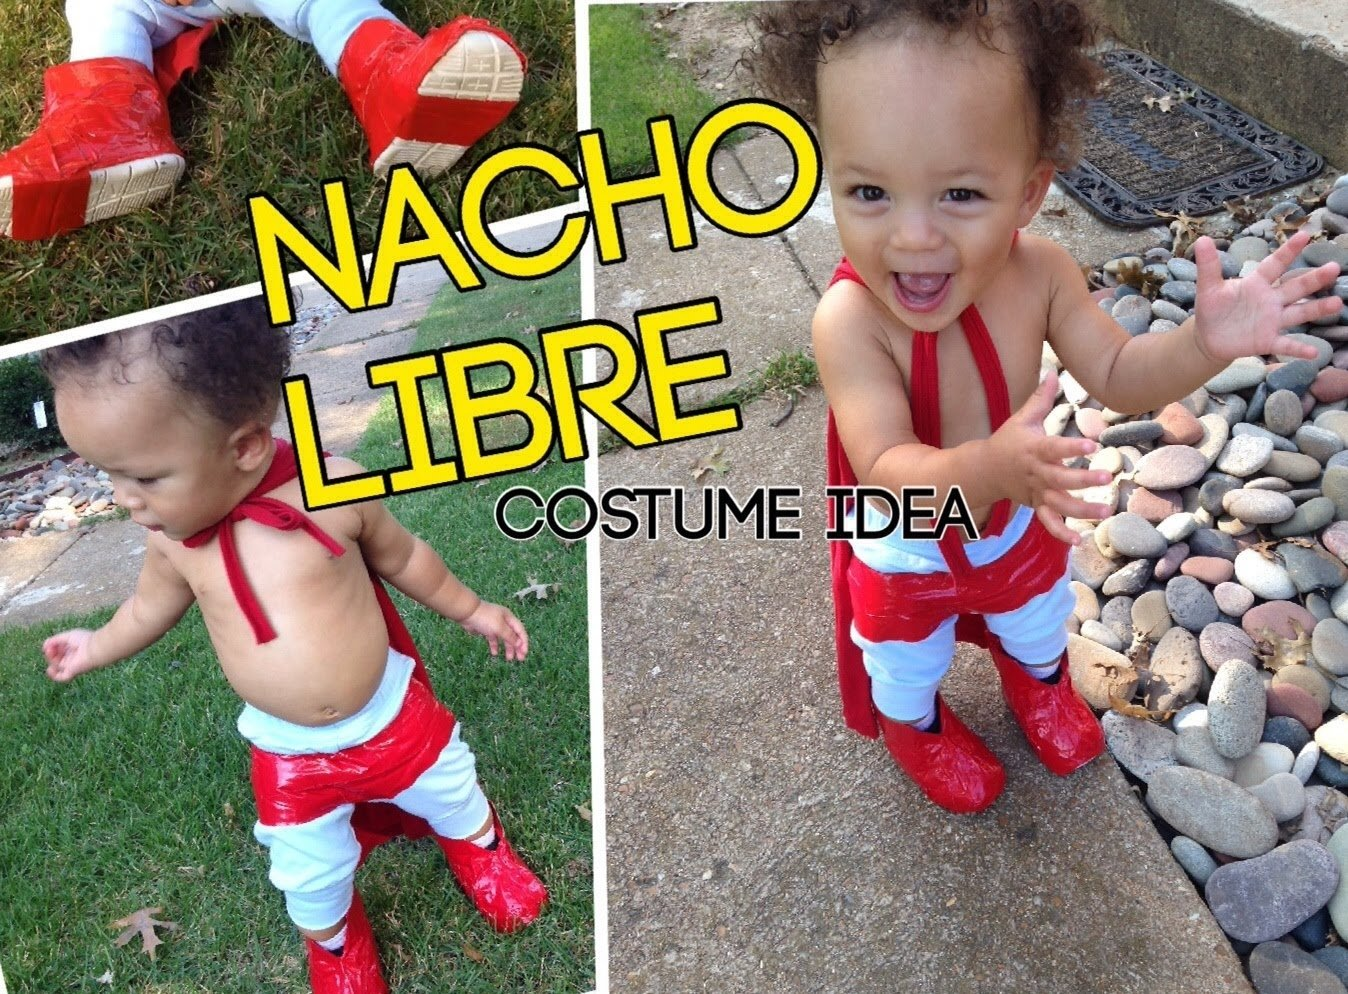 10 Most Popular Homemade Toddler Halloween Costume Ideas diy nacho libre costume halloween costume idea for children and 2021